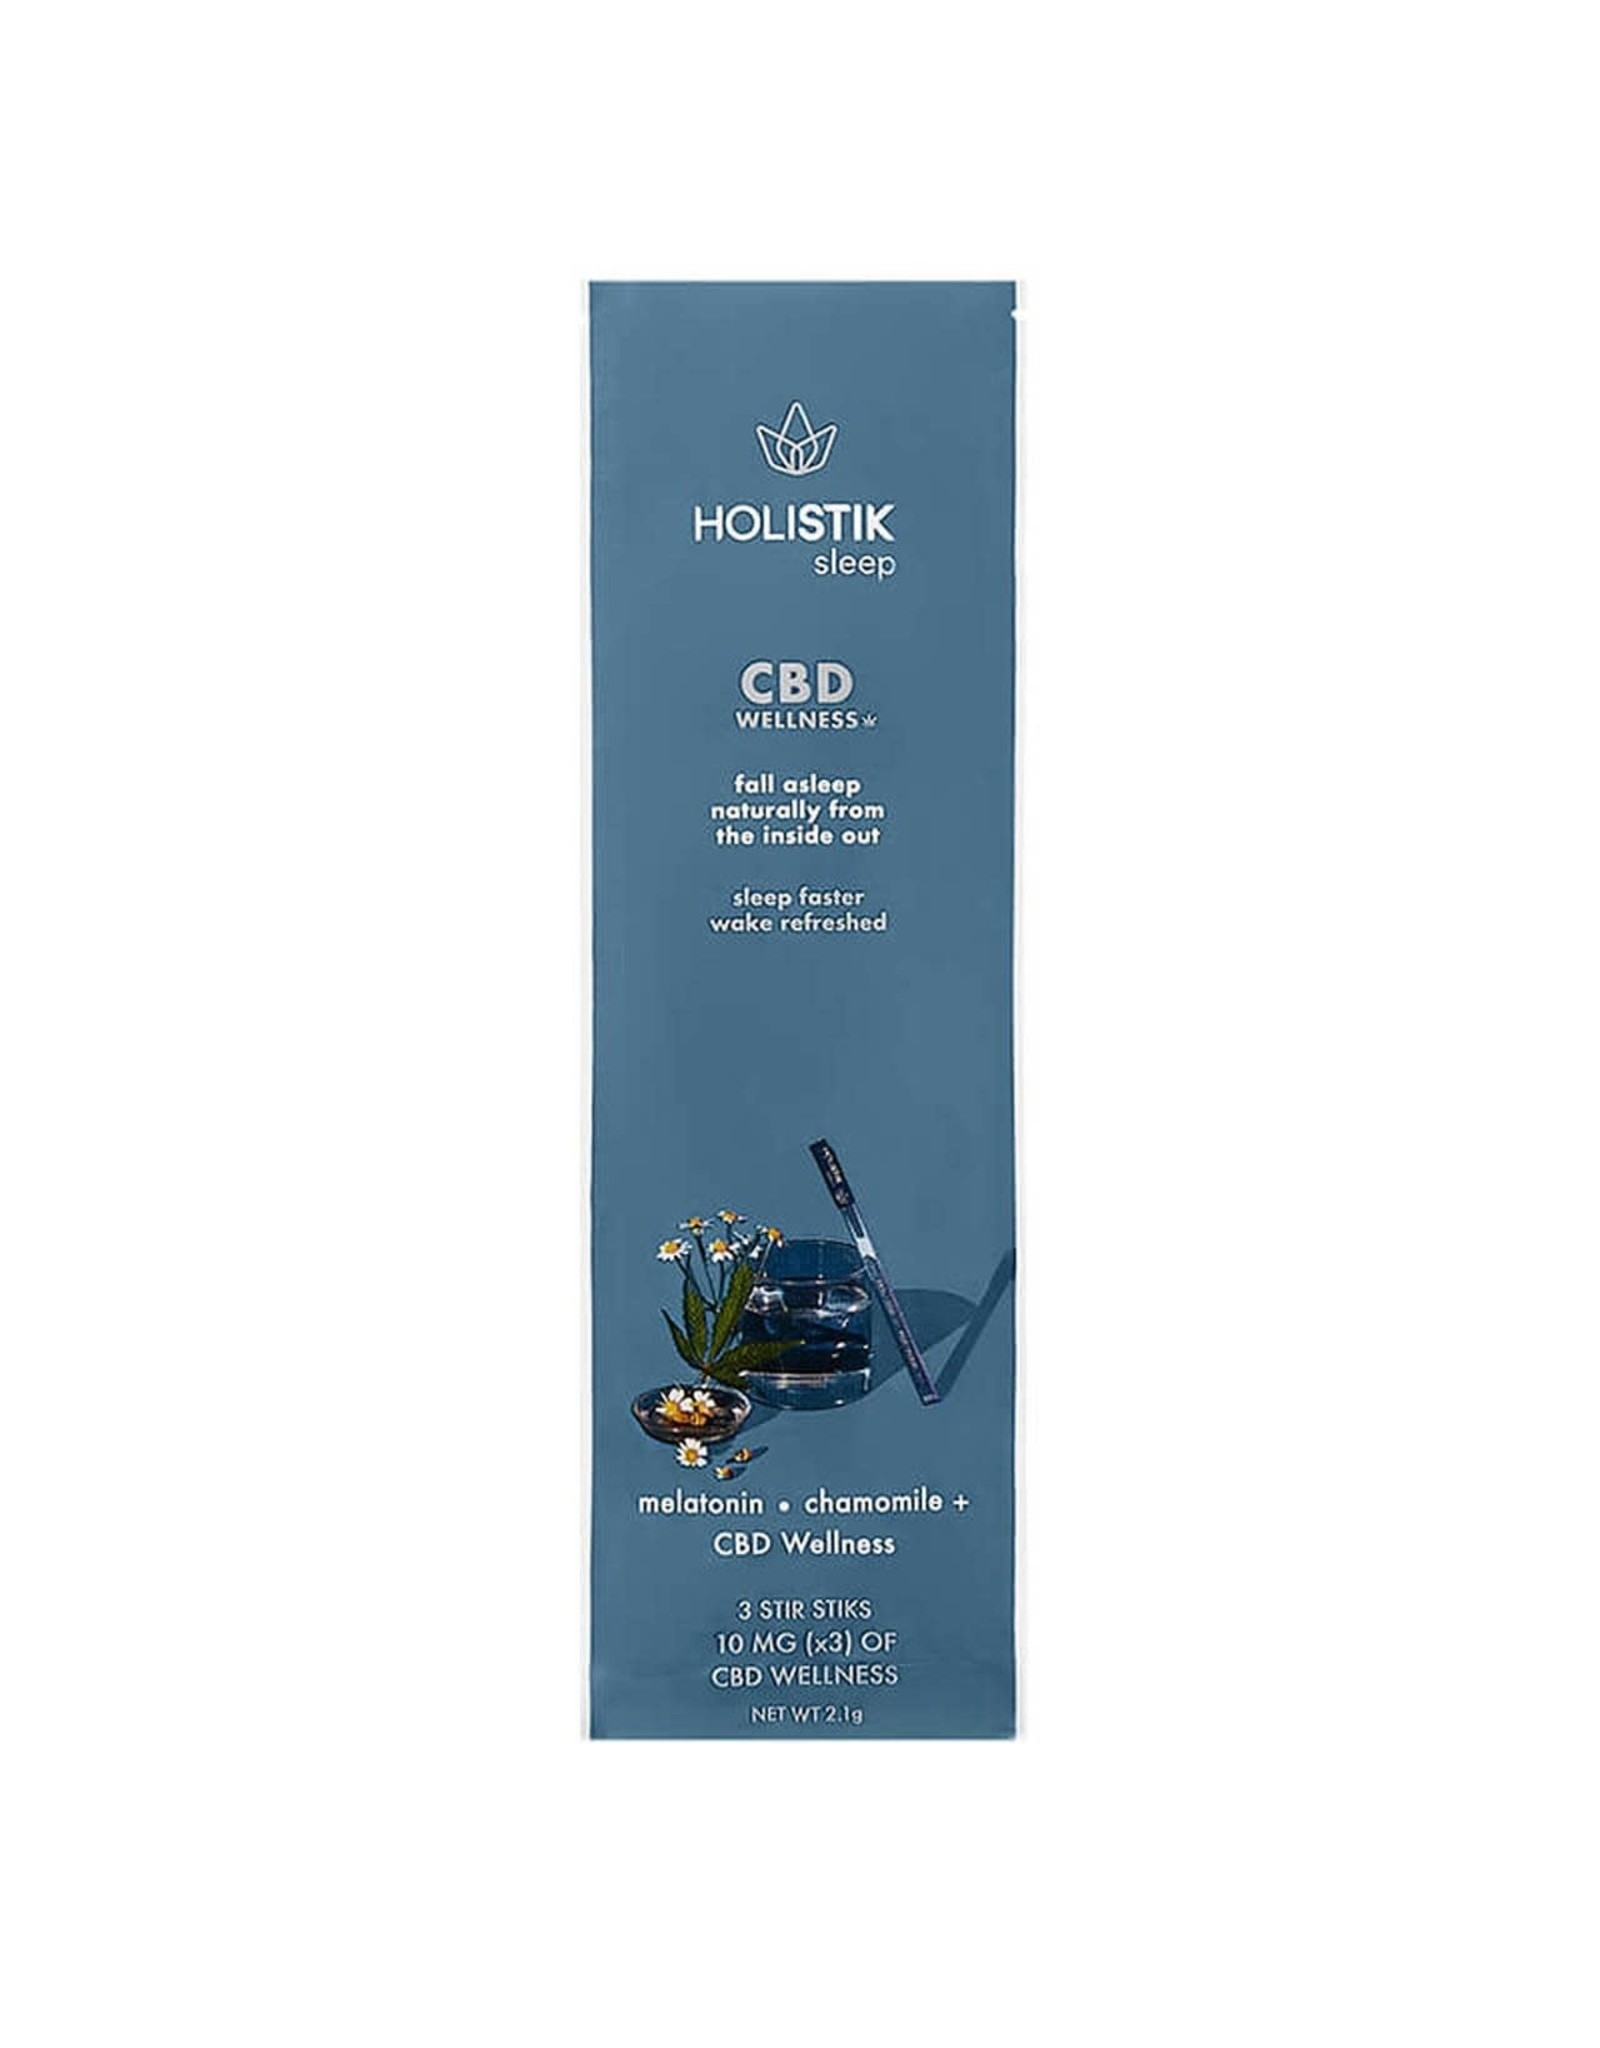 Holistik Holistik Sleep Stir Stik 30mg 3 sticks